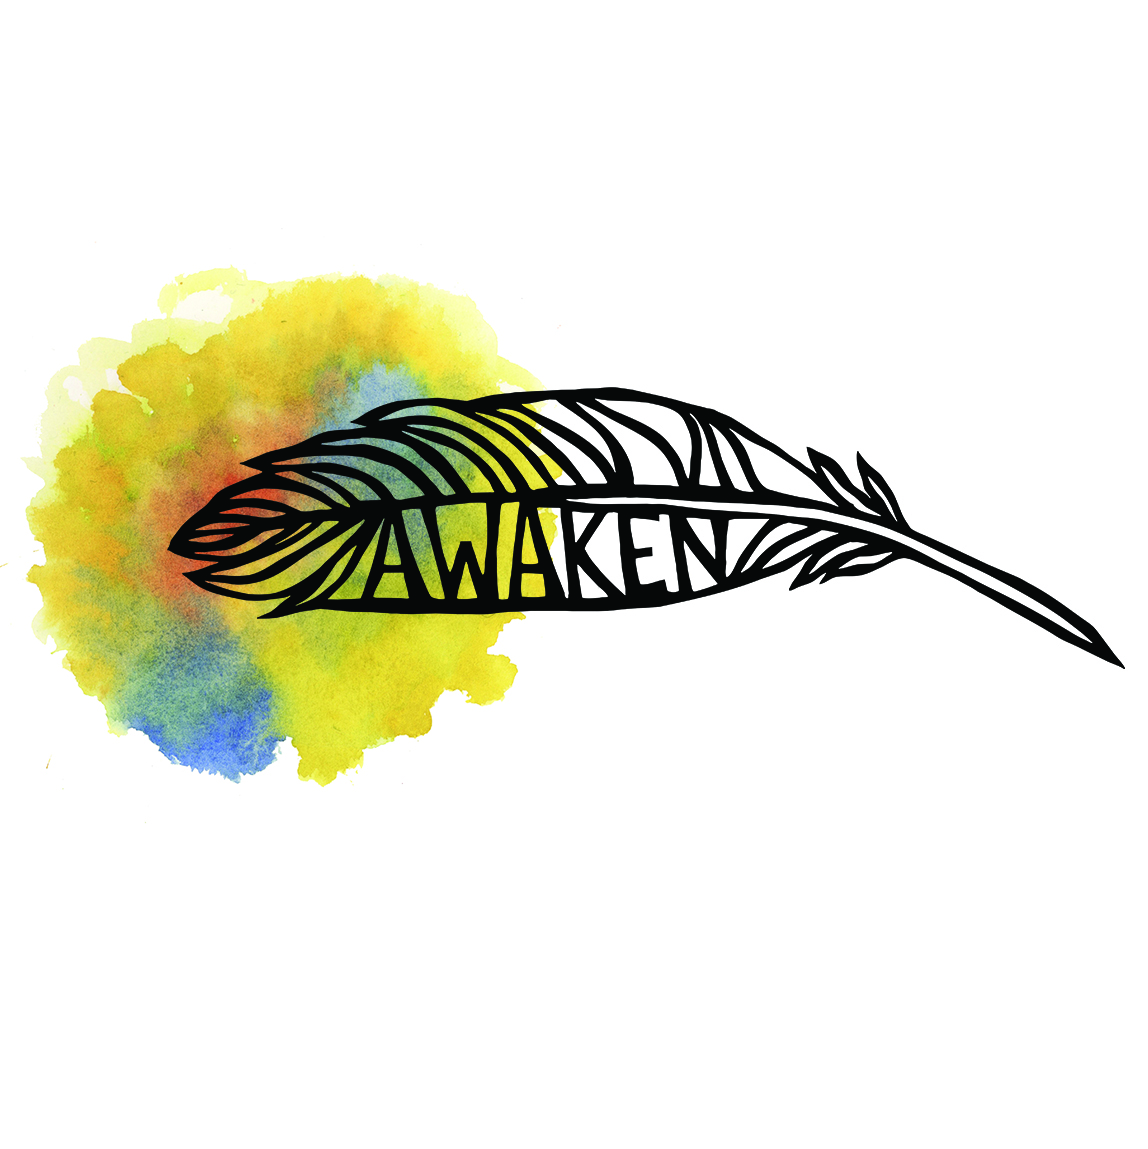 Awaken Feather with Color.Square.jpg